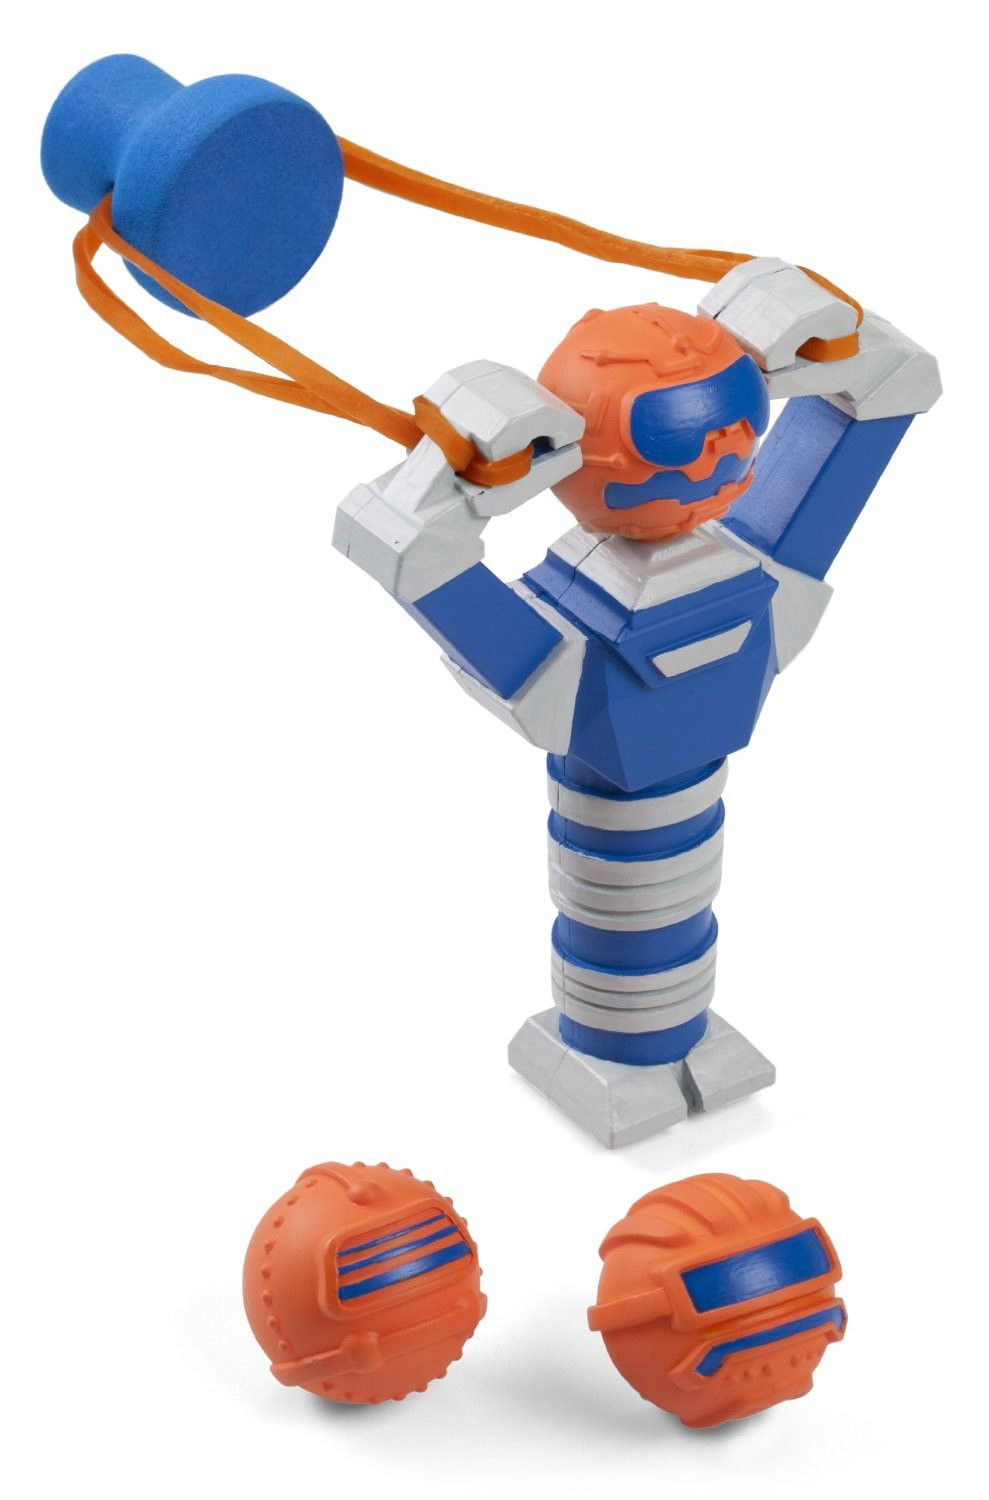 Slingbots - Robot Shaped Toy Slingshot with 3 Foam Balls